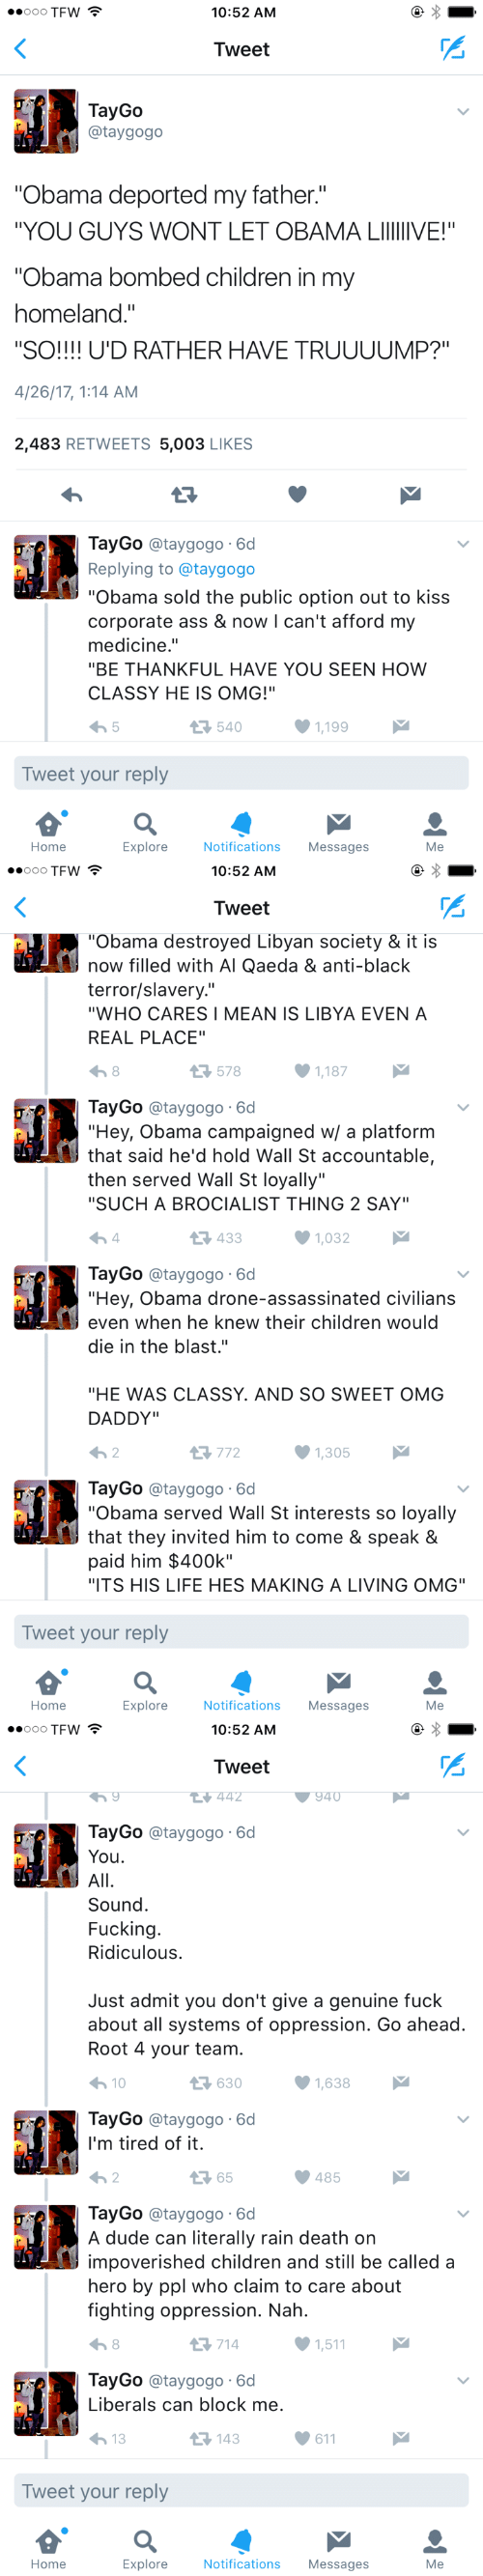 "Ass, Carolina Panthers, and Children: eoOO TFW  10:52 AM  Tweet  2  TayGo  @taygogo  Obama deported my father.""  YOU GUYS WONT LET OBAMA LIIIIIVE!""  Obama bombed children in my  homeland.  SO!!!! U'D RATHER HAVE TRUUUUMP?""  4/26/17, 1:14 AM  2,483 RETWEETS 5,003 LIKES  